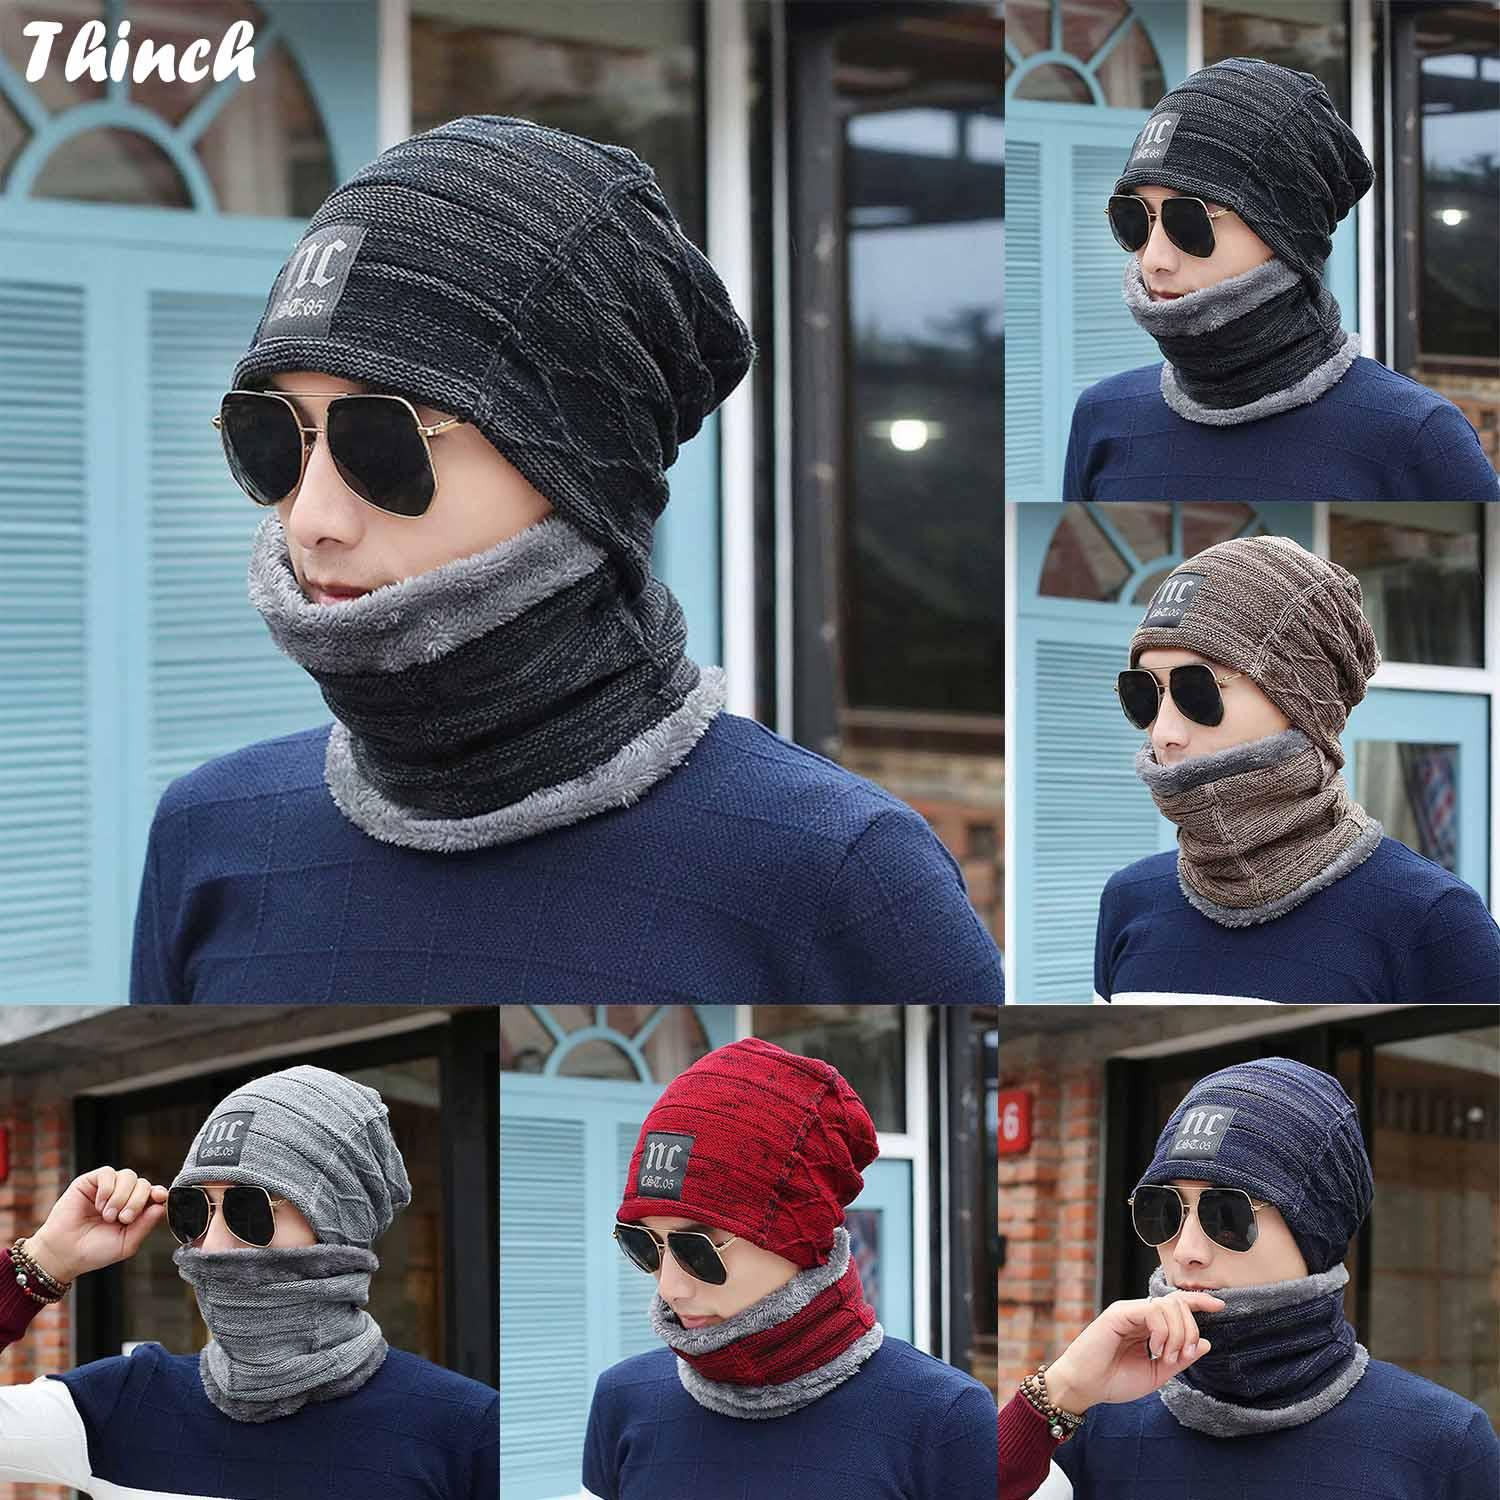 dad6749a6 2pcs Unisex Windproof Winter Warm Wool Knit Beanie Cap Hat Neck Warmer  Scarf Set with Thick Warm Fleece Lined for Men Women